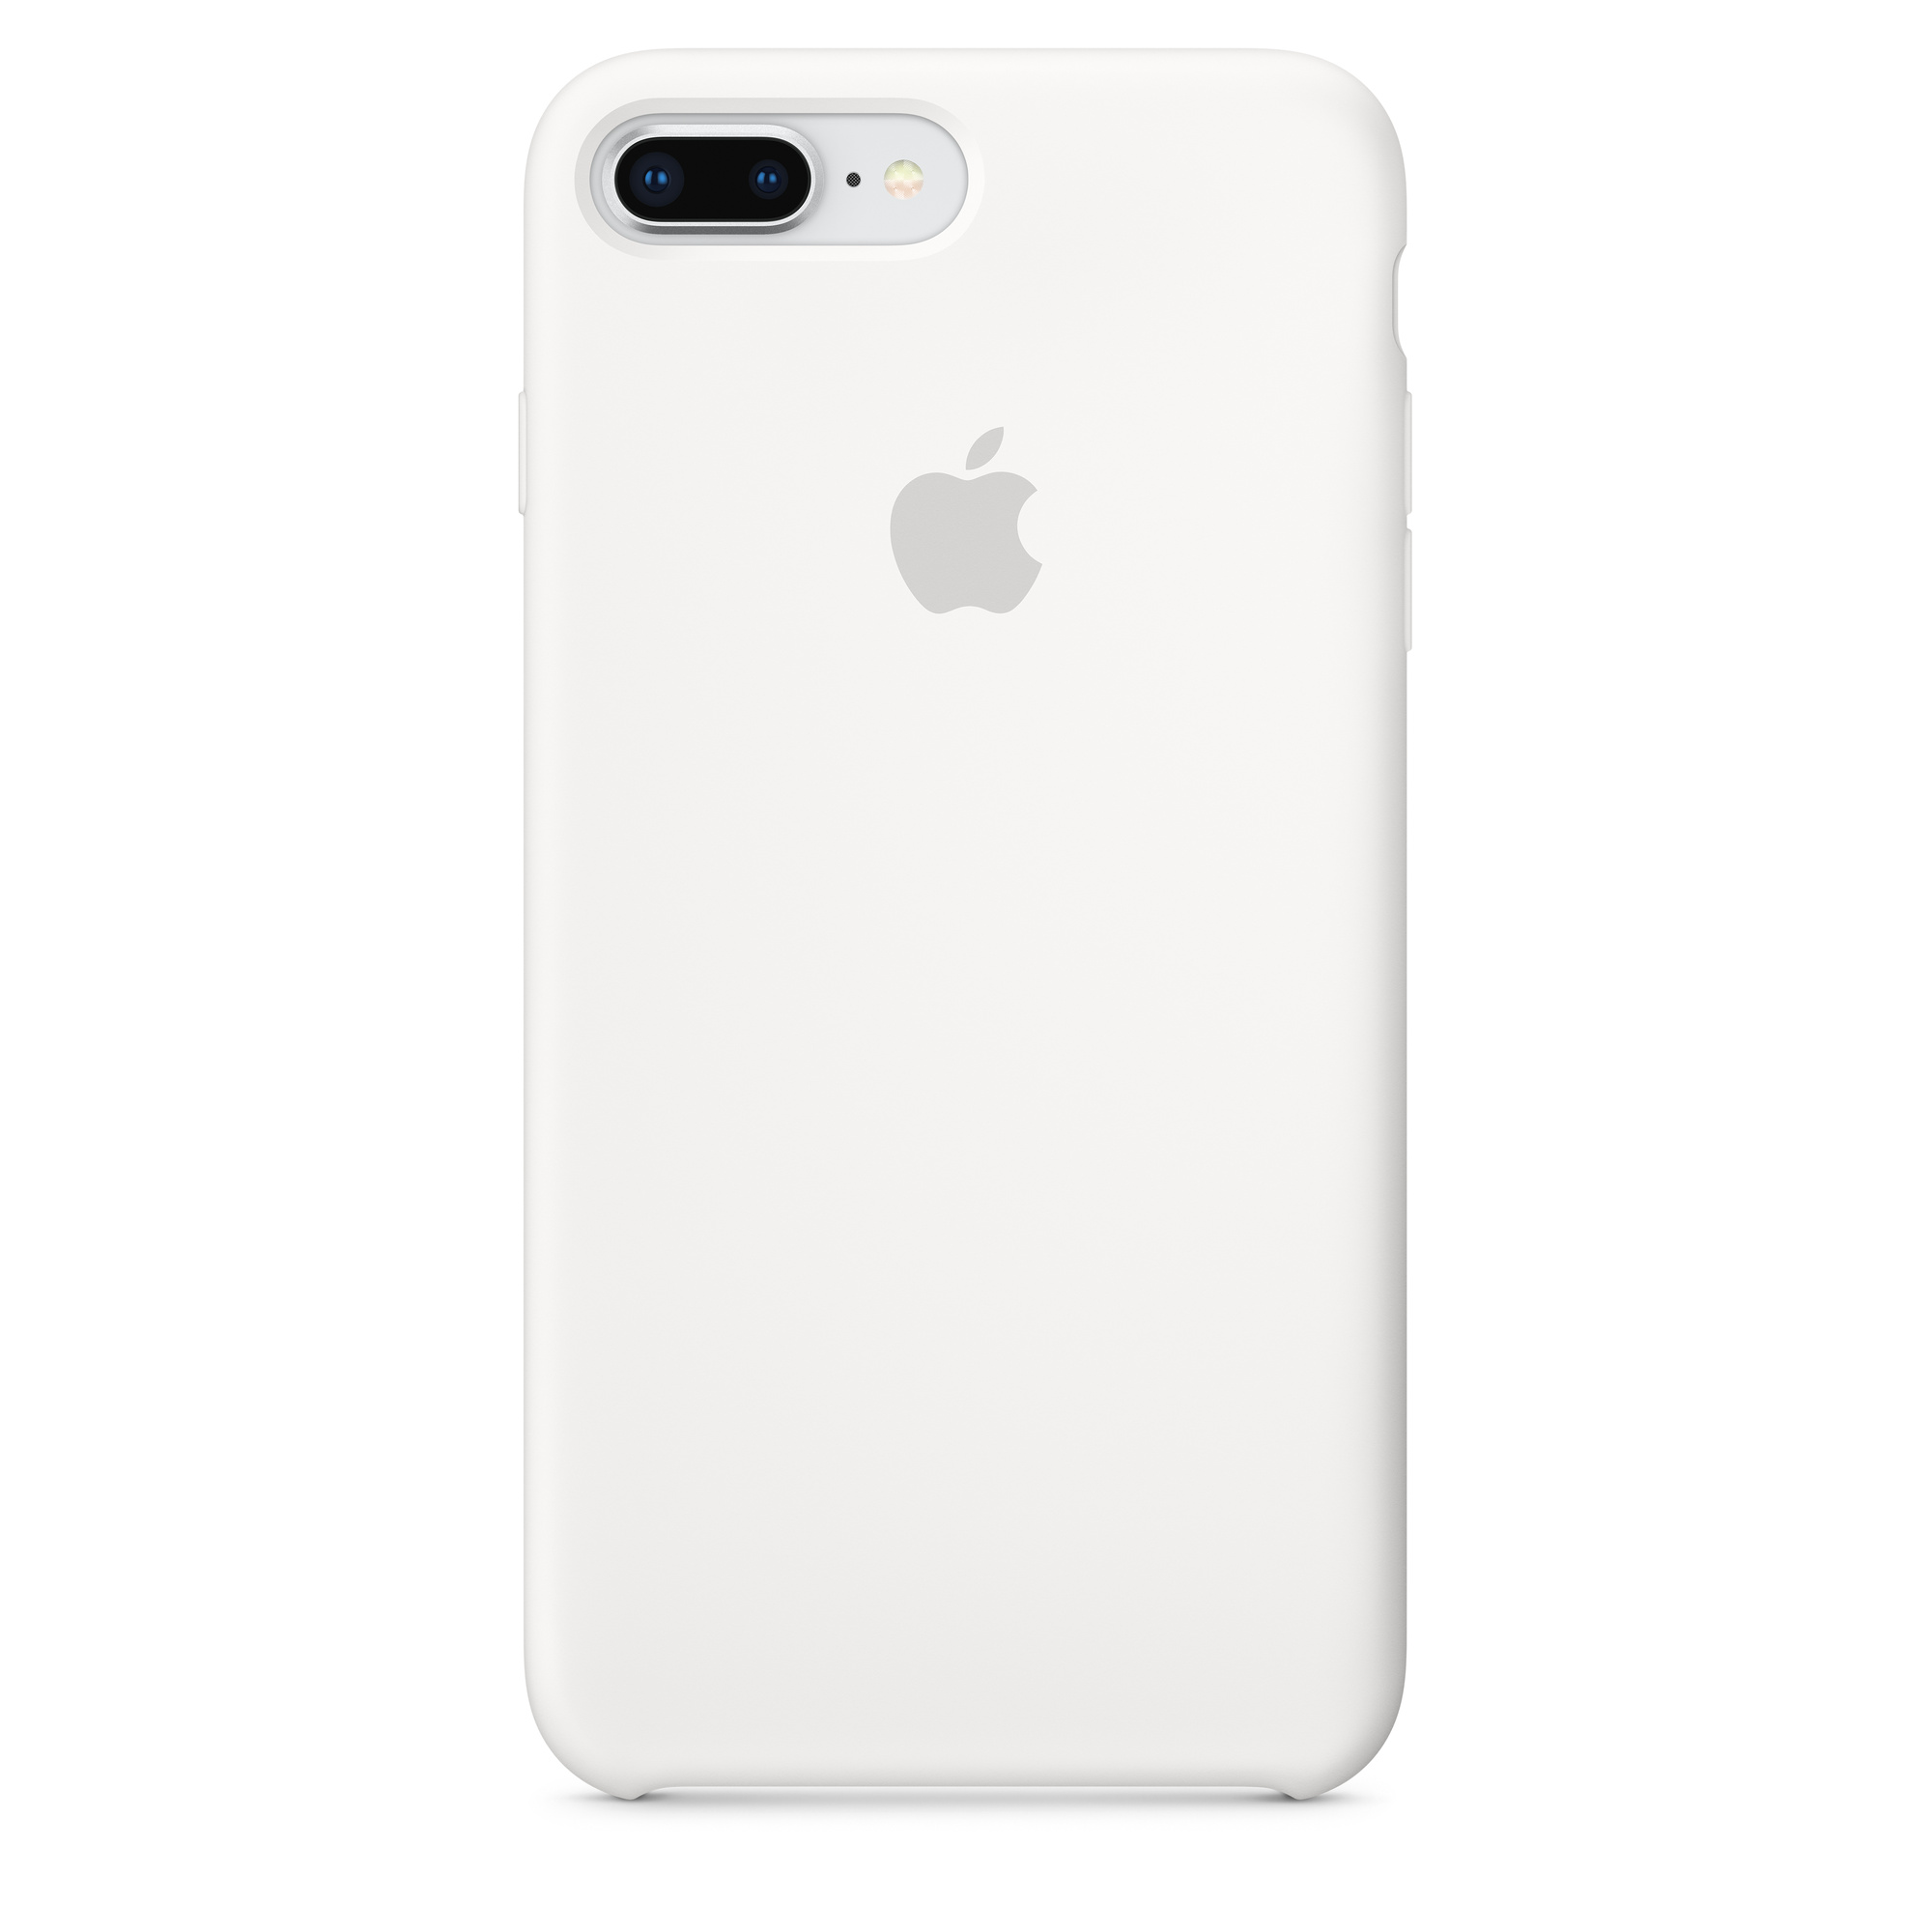 new products 747ec d3dd7 iPhone 8 Plus / 7 Plus Silicone Case - White